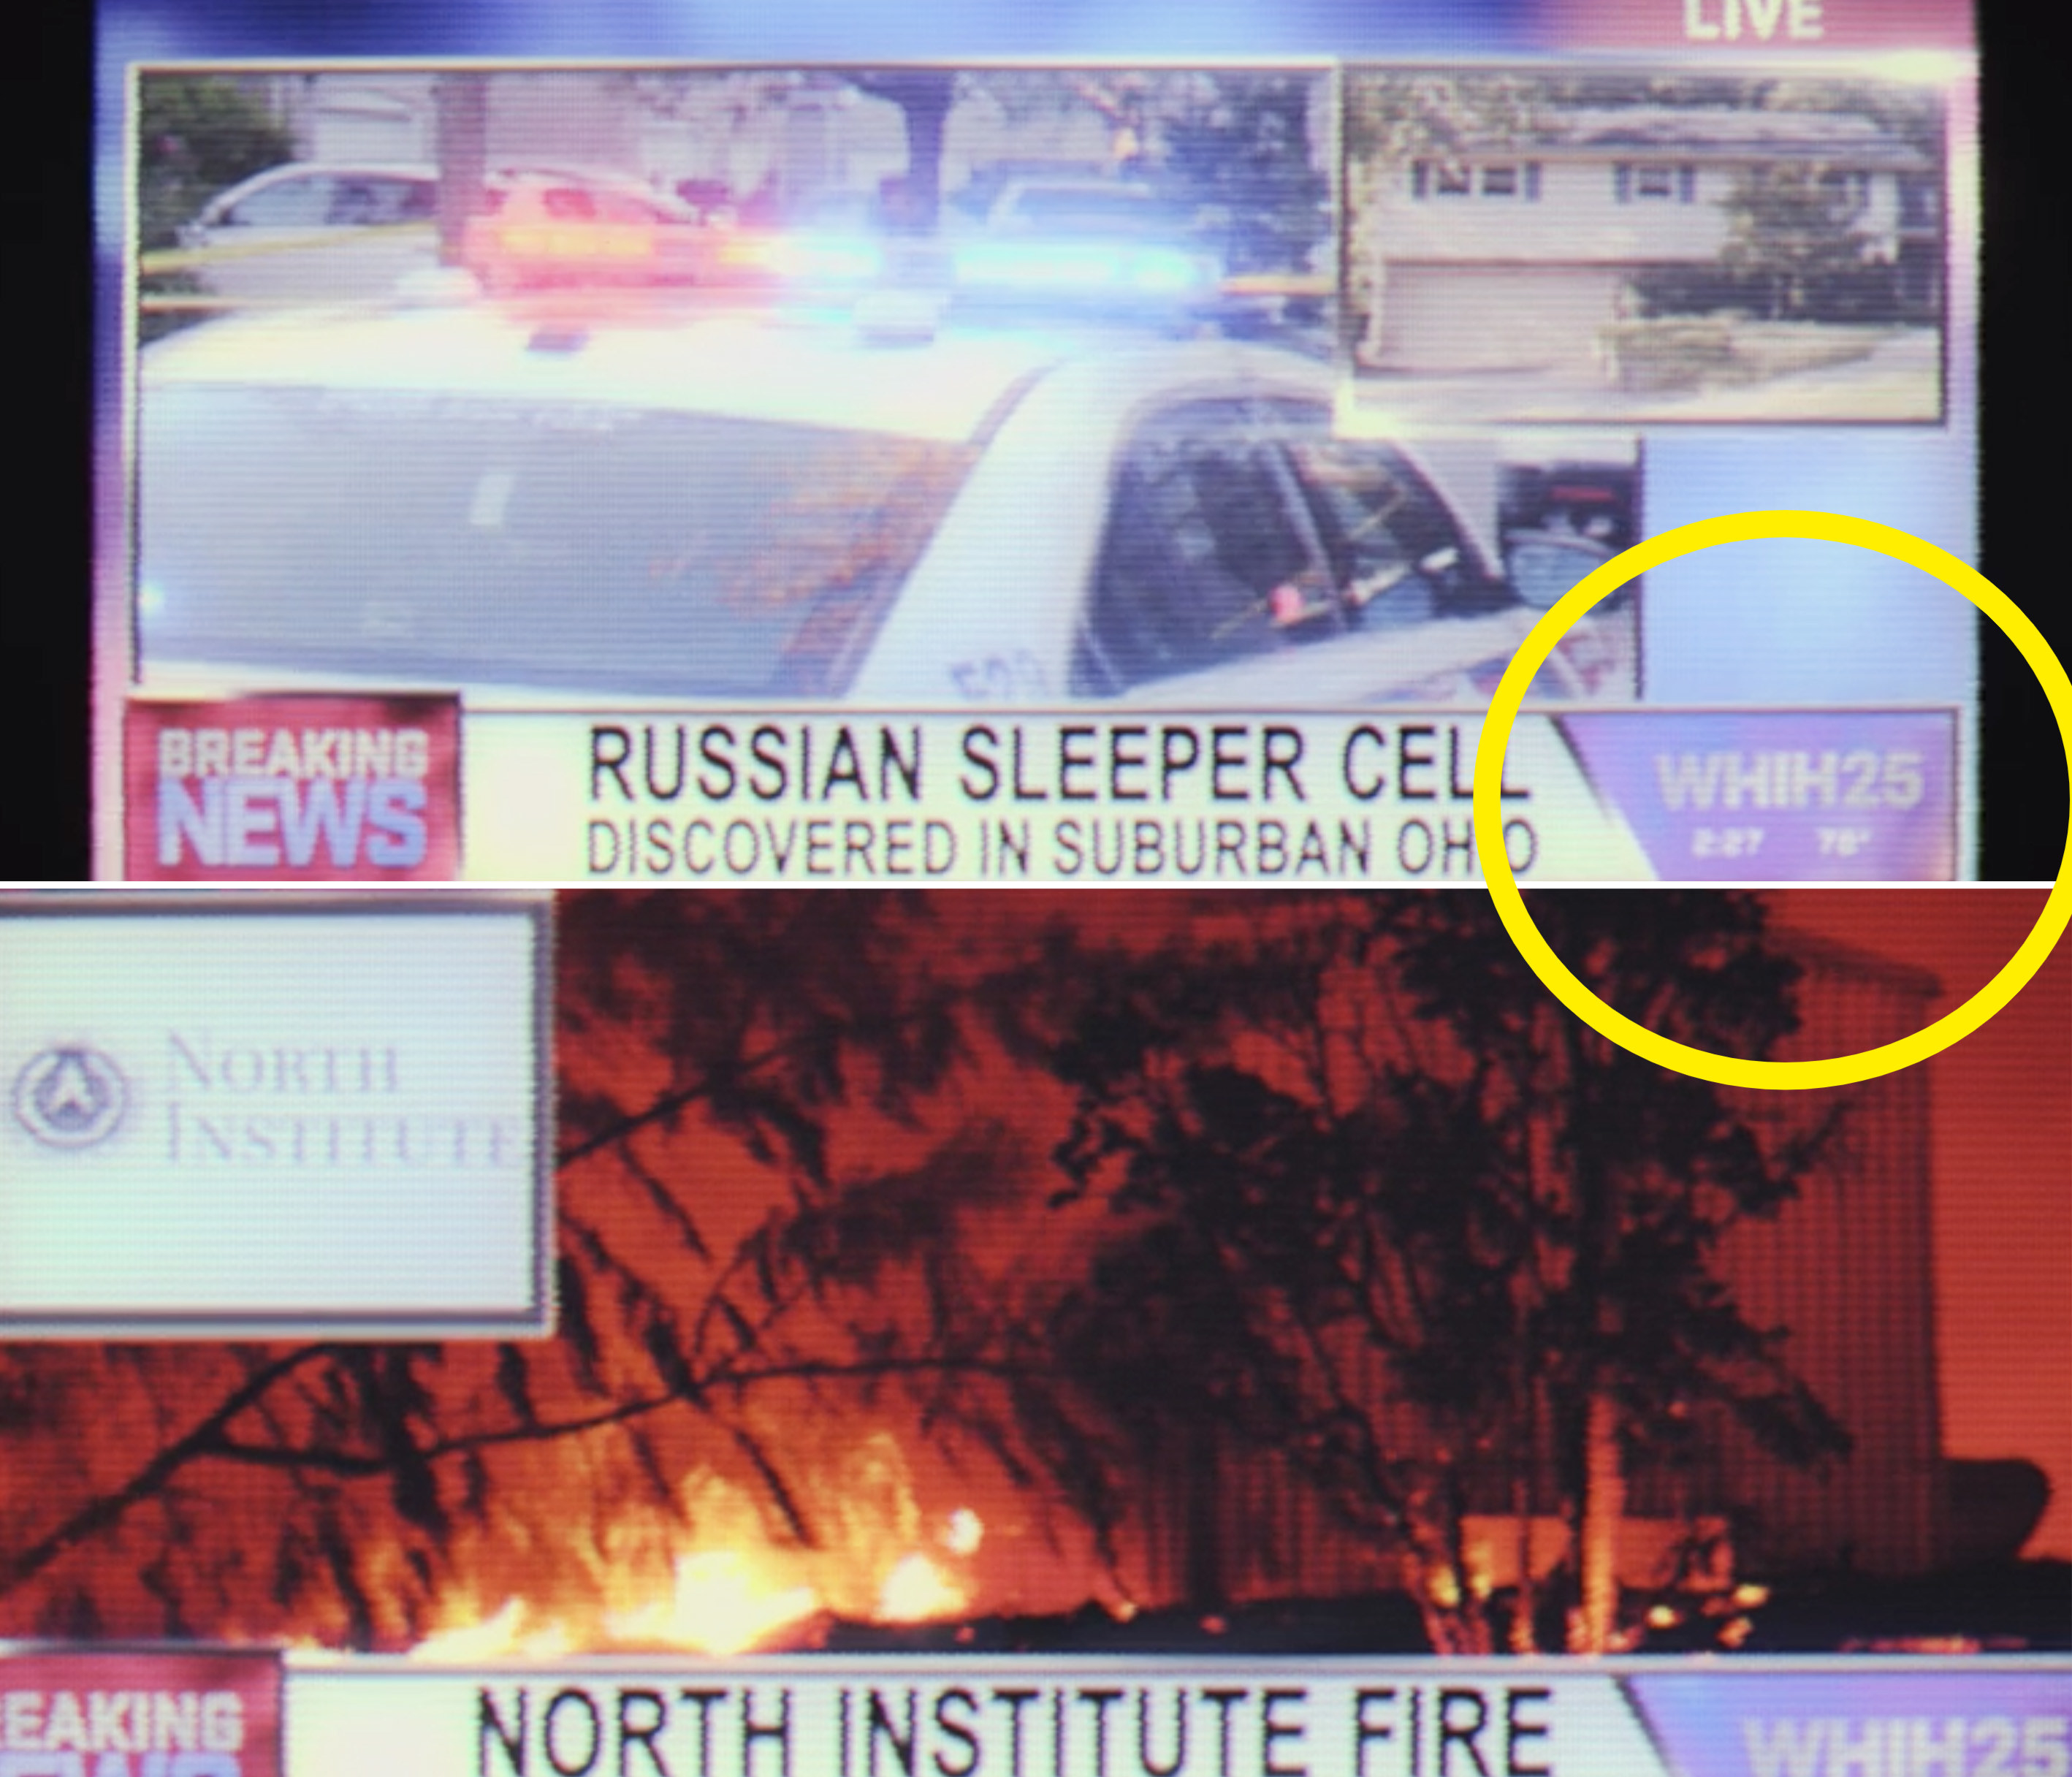 """News footage talking about a """"Russian sleeper cell"""" in Ohio and the North Institute fire"""